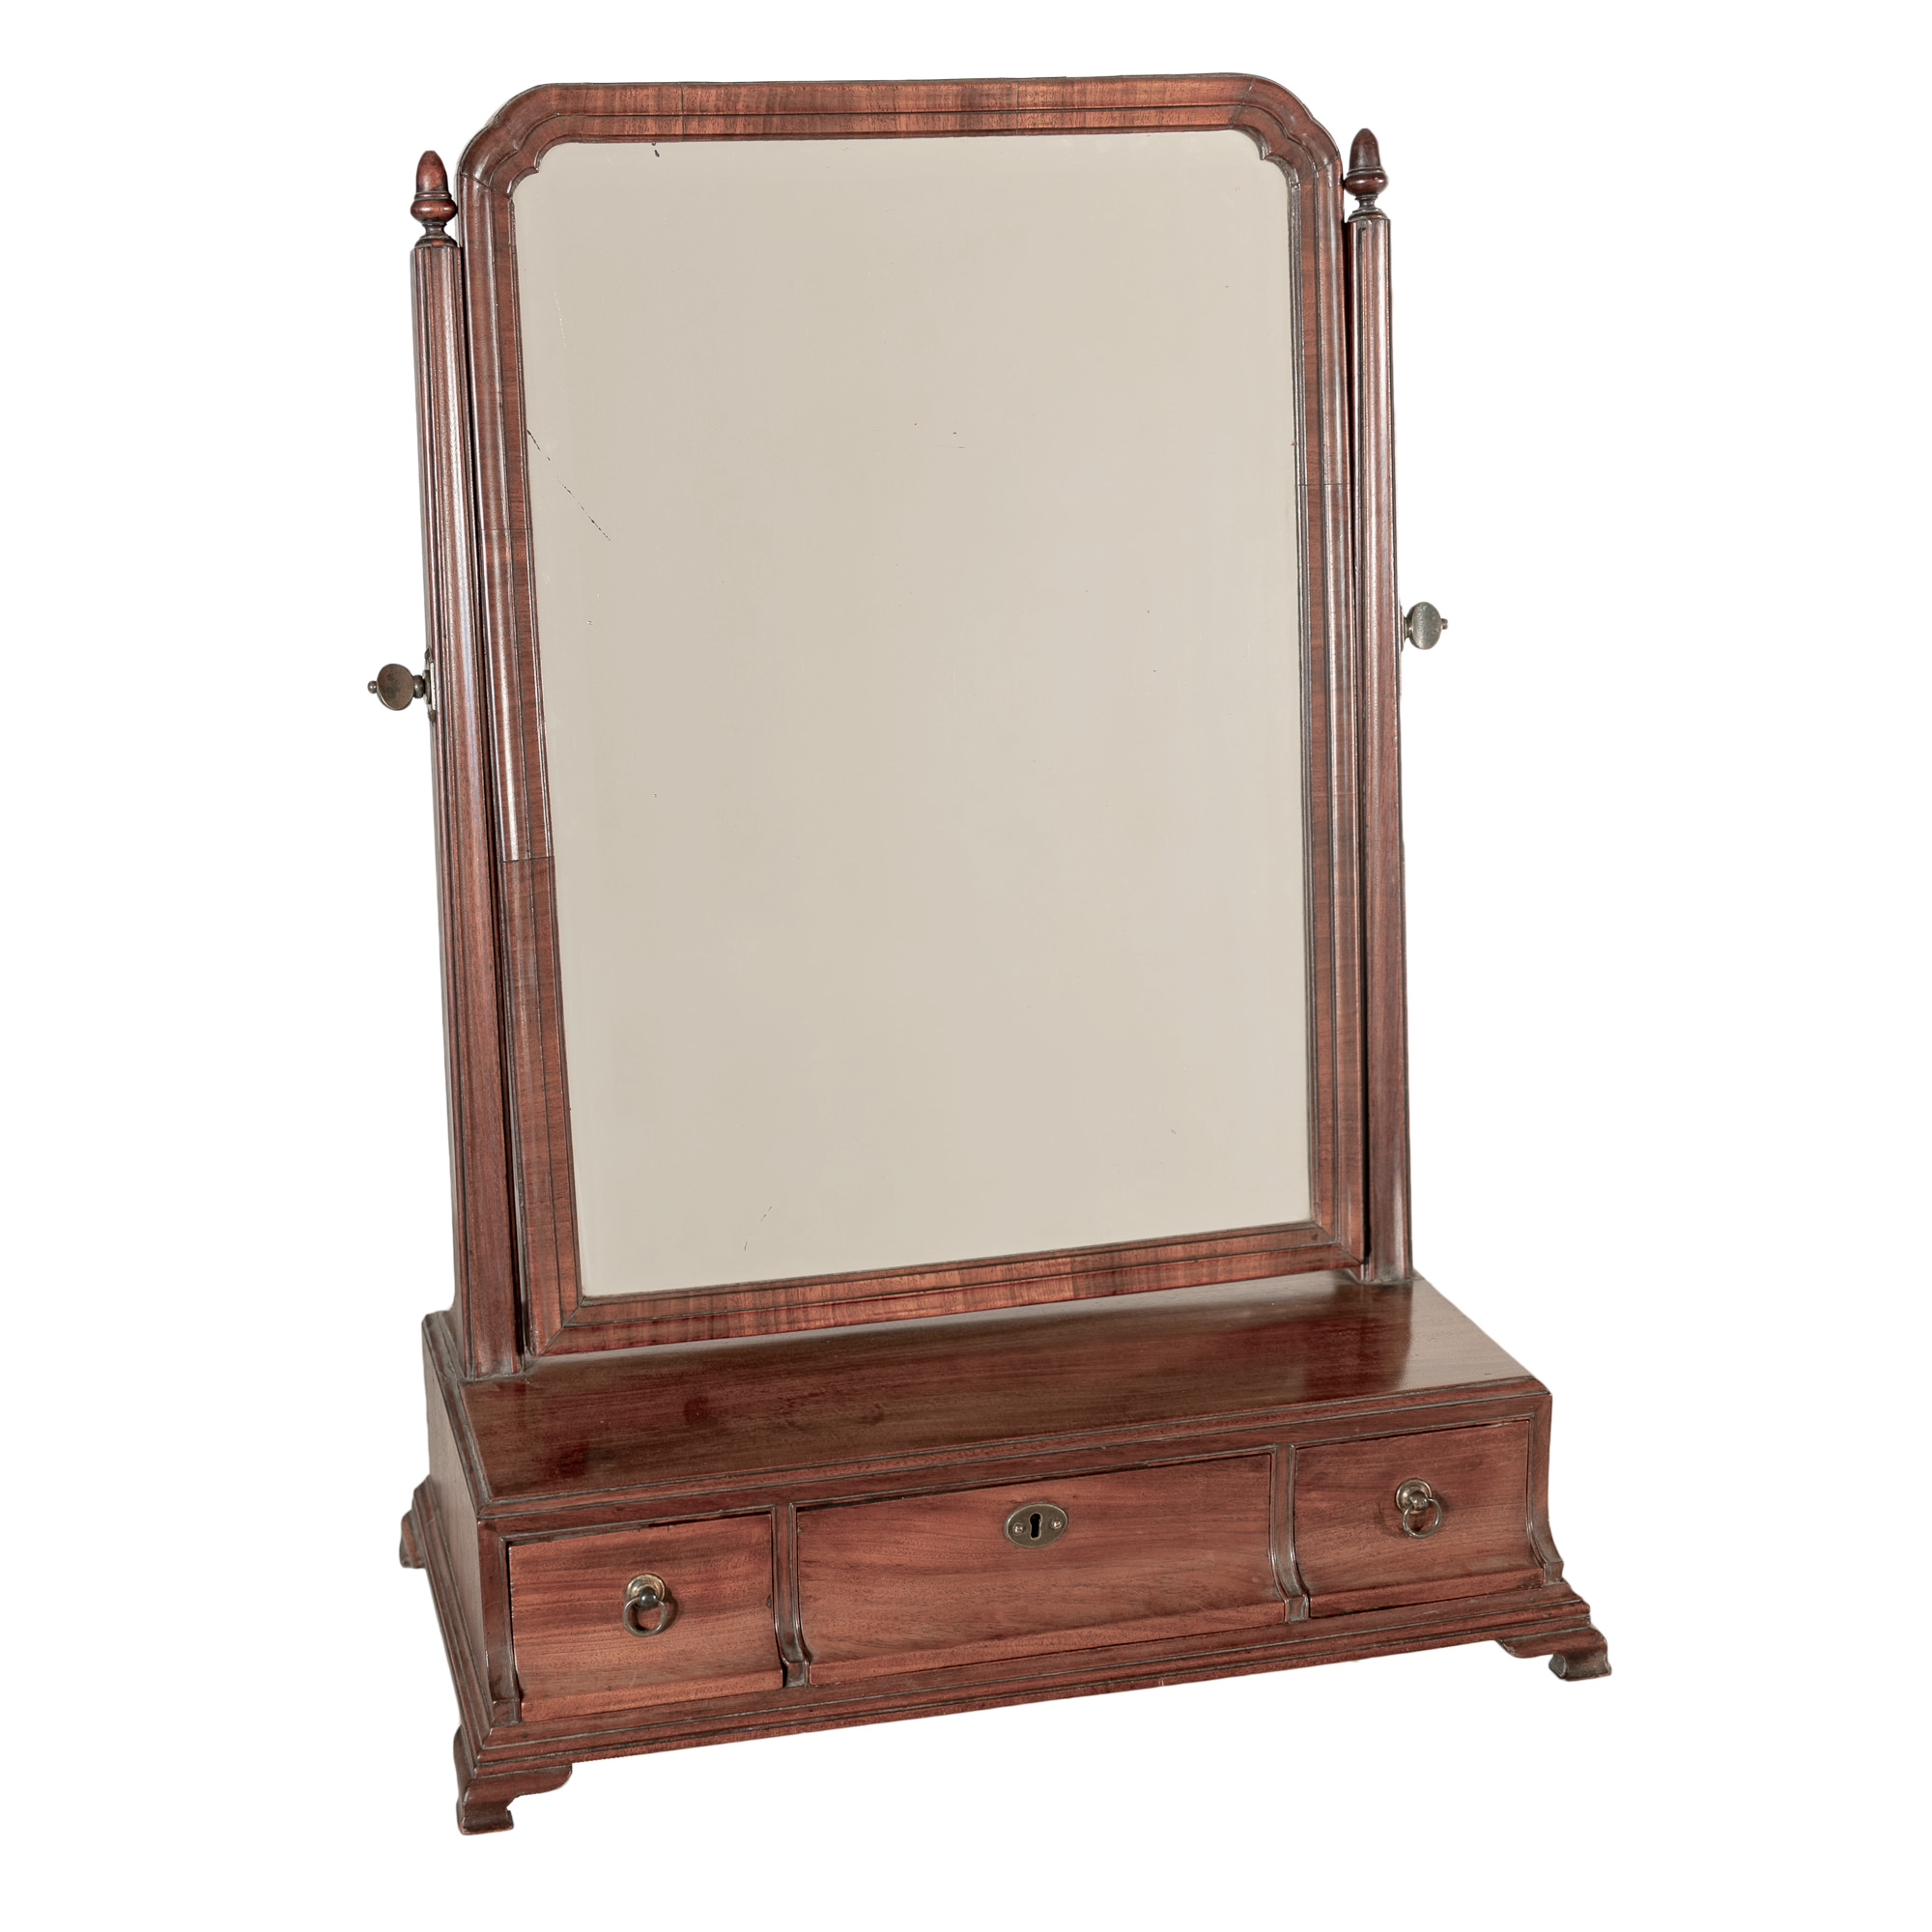 'George III Mahogany Toilet Mirror with Bevelled Glass and Three Drawers on Ogee Bracket Feet Early 19th Century'